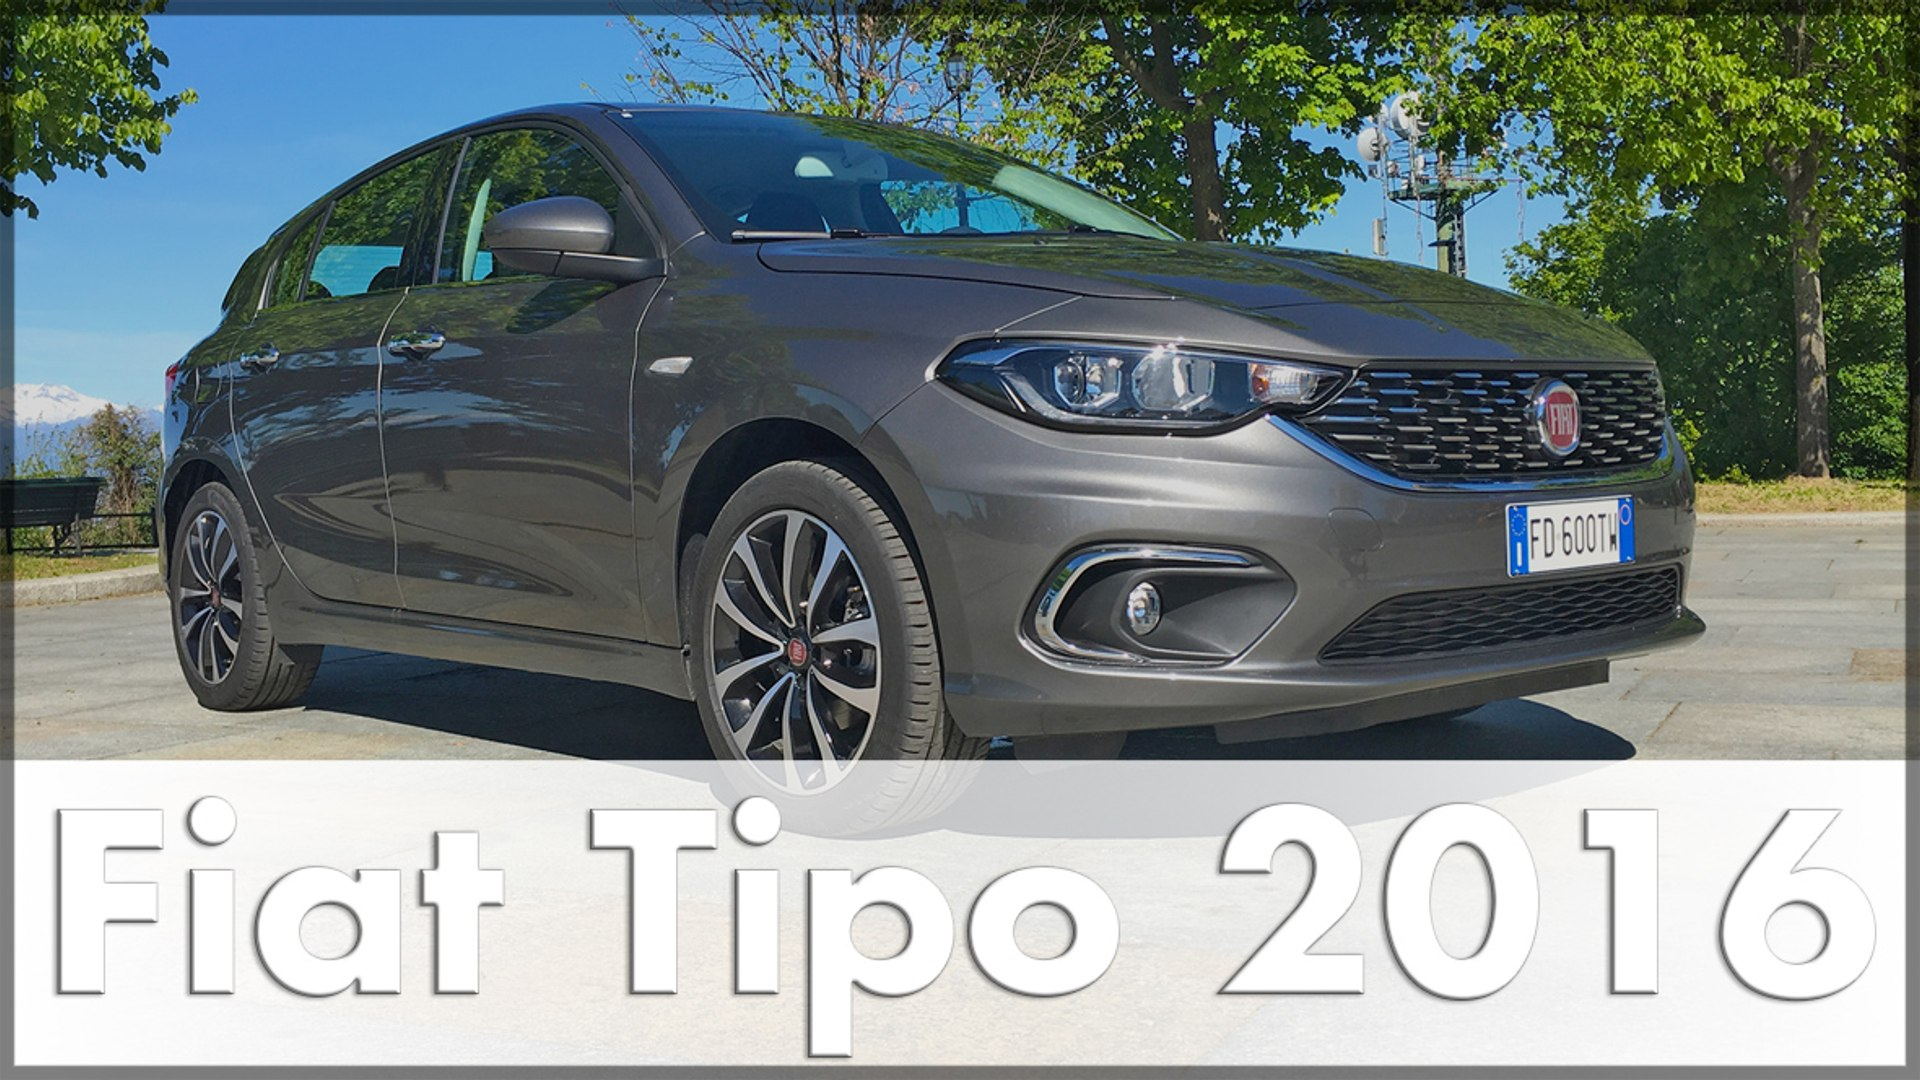 Fiat Tipo 2016 Test Drive & Review 1.4L petrol | Five-door | Hatchback | Car | English